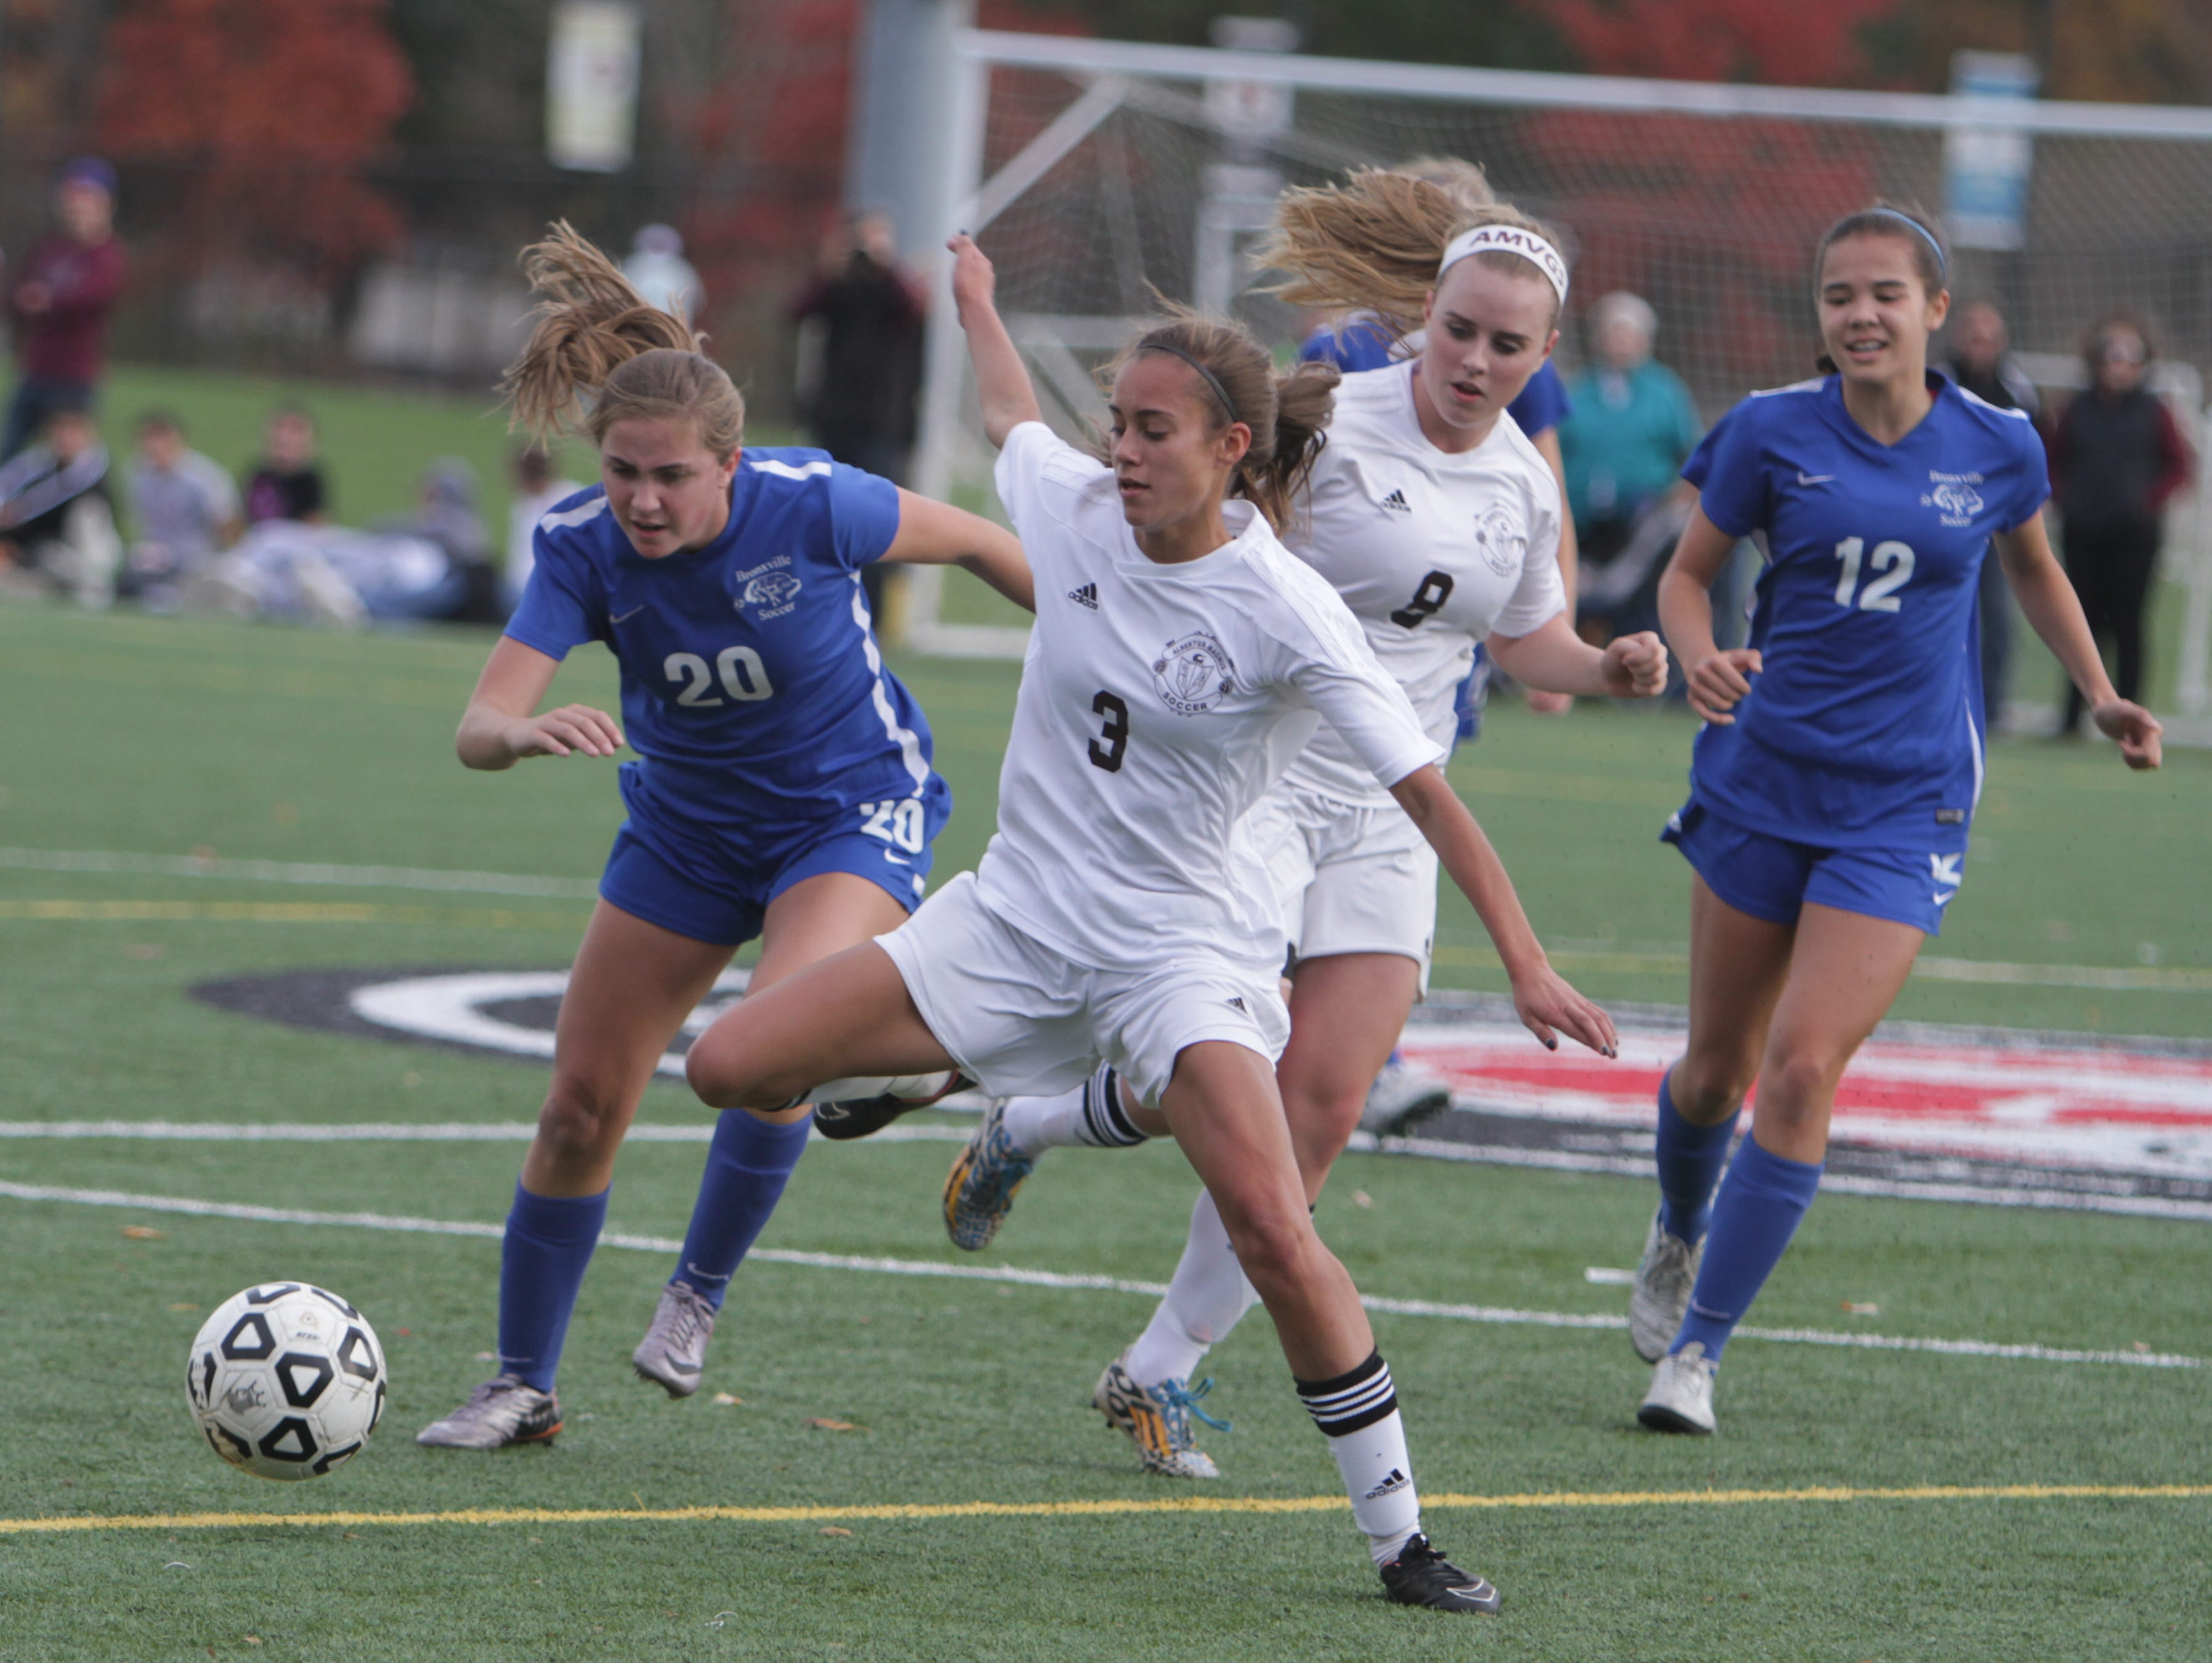 Bronxville's Natalie Kister (12) and Albertus Magnus' Danielle LaRochelle battle for a loose ball during a Section 1, Class B semifinal game at the Orangetown Soccer Field Complex on Thursday, October 29th, 2015. Albertus Magnus won 1-0.